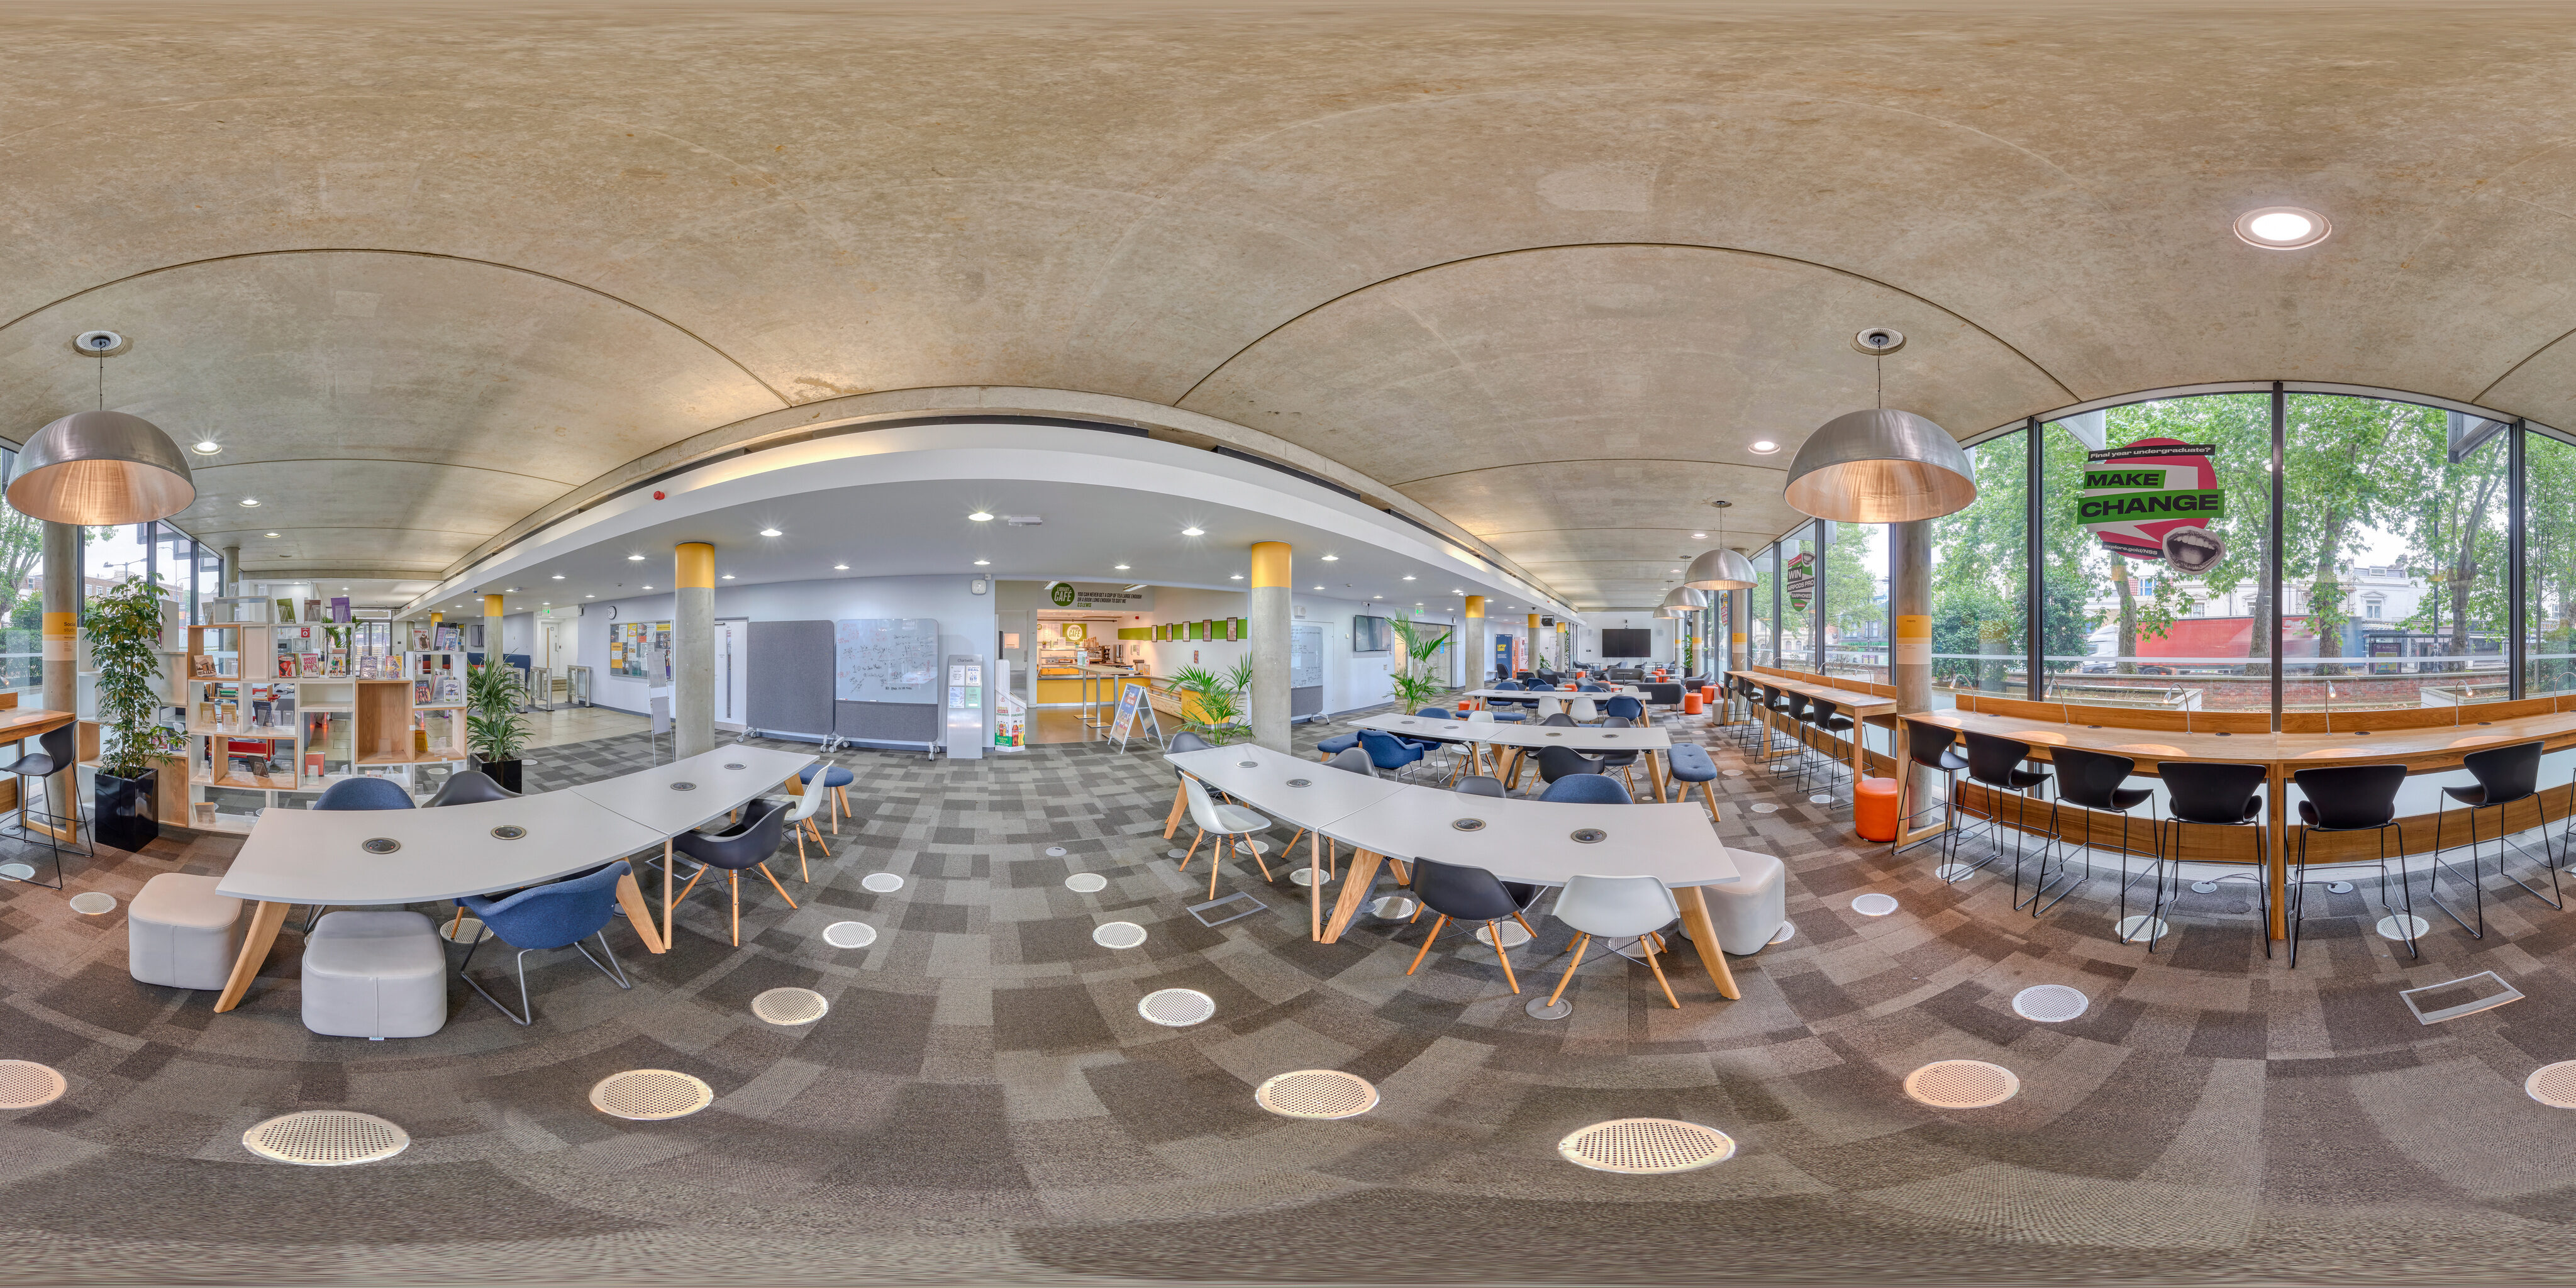 360 of Library downstairs